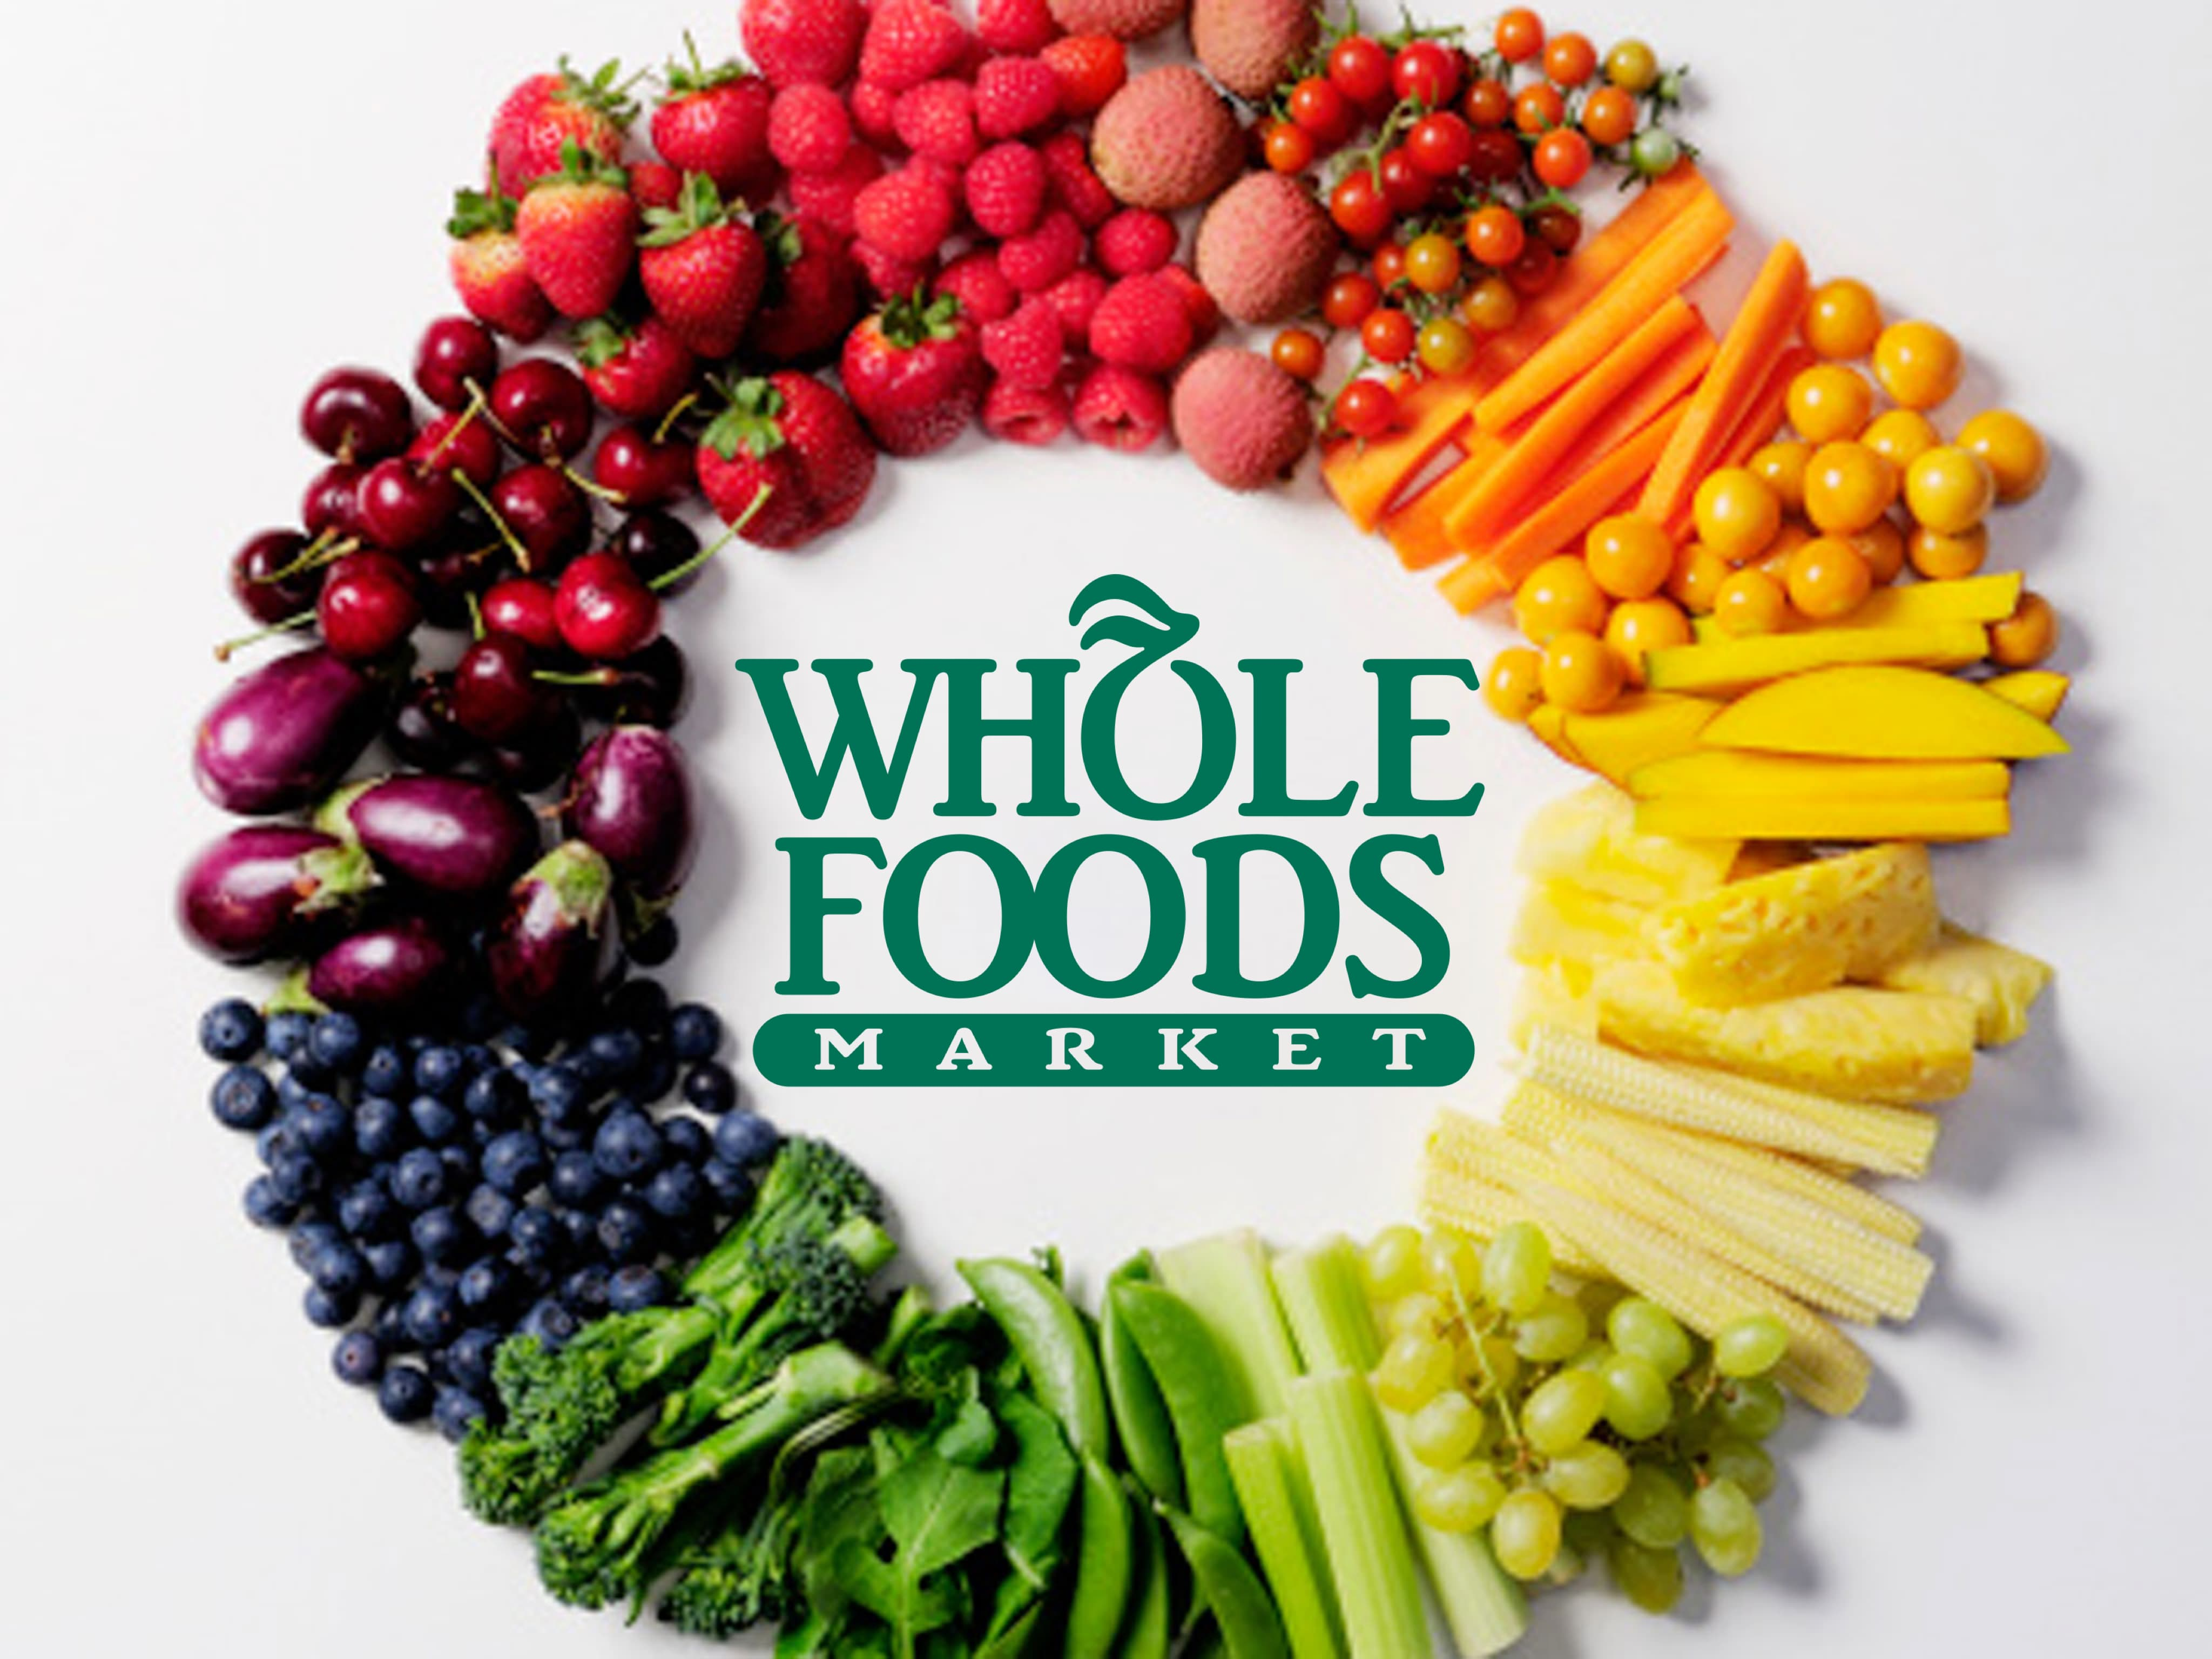 Whole Foods: EBITDA Multiples Trading at a Discount